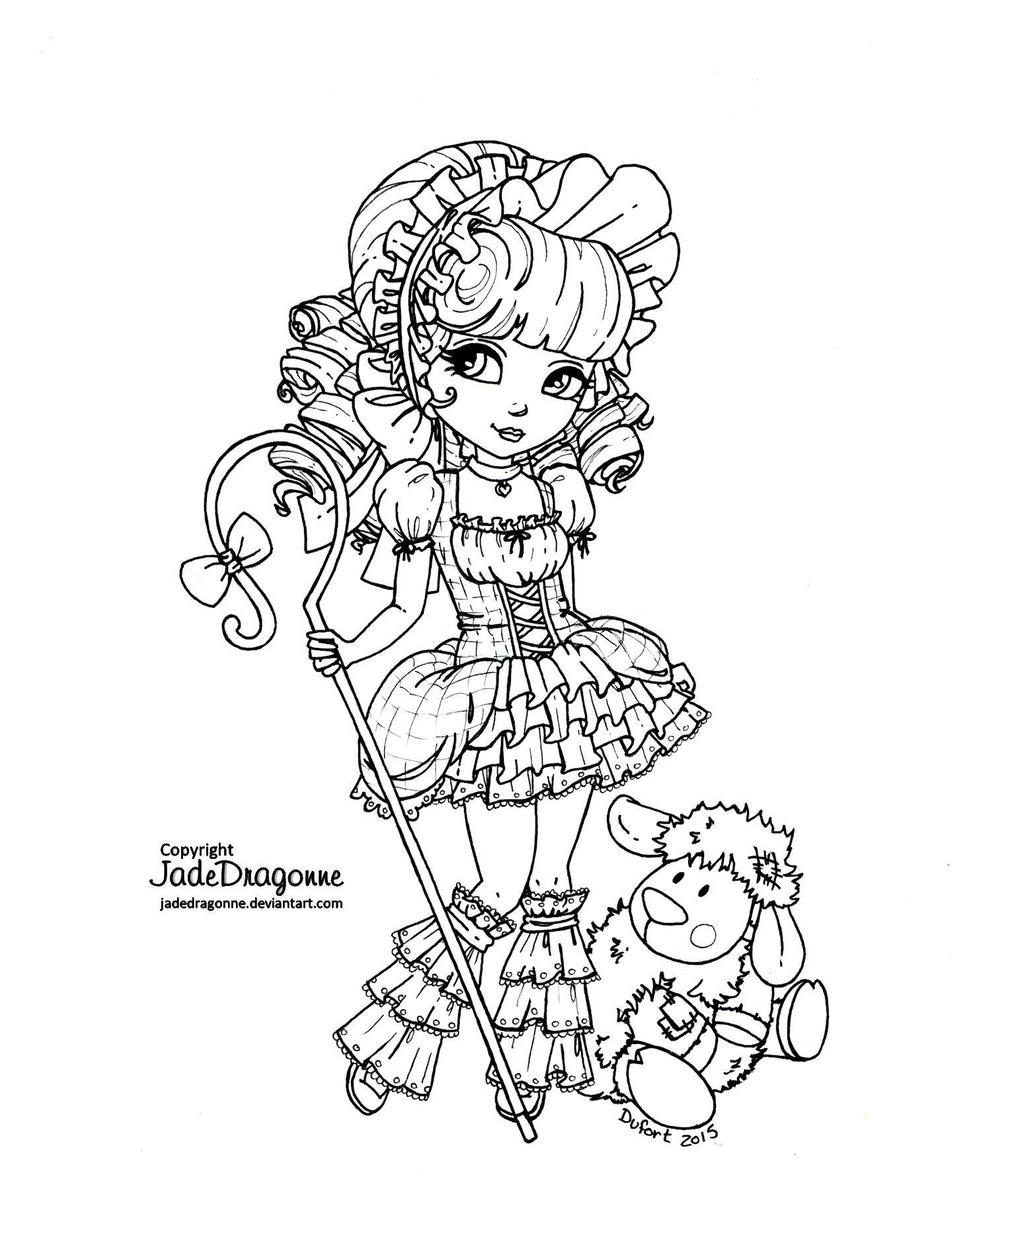 jadedragonne deviantart coloring pages - photo#25